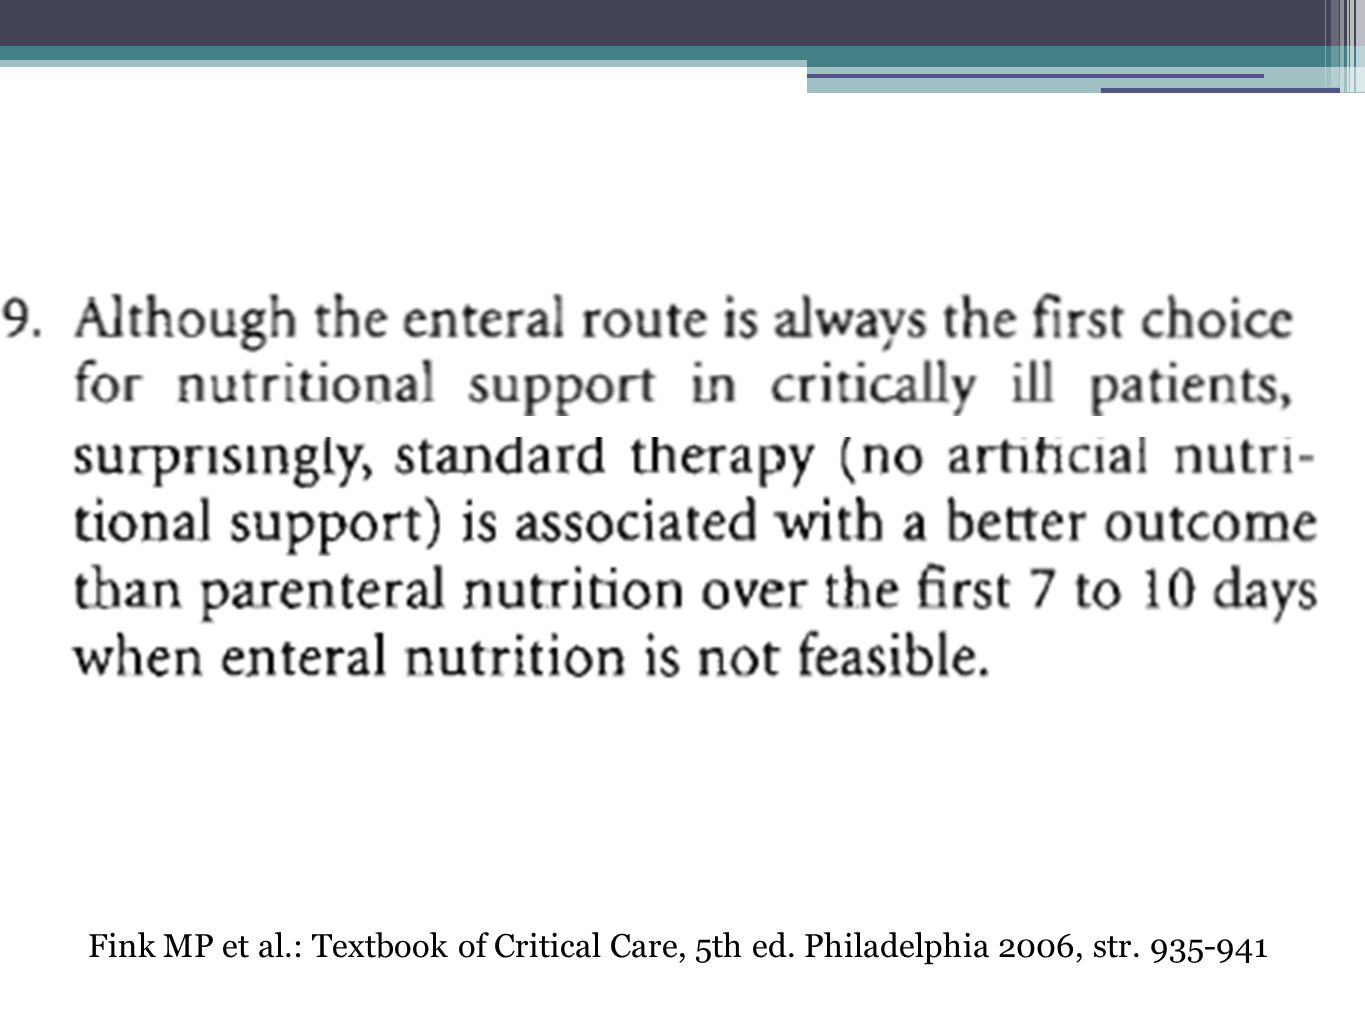 F Fink MP et al.: Textbook of Critical Care, 5th ed. Philadelphia 2006, str. 935-941